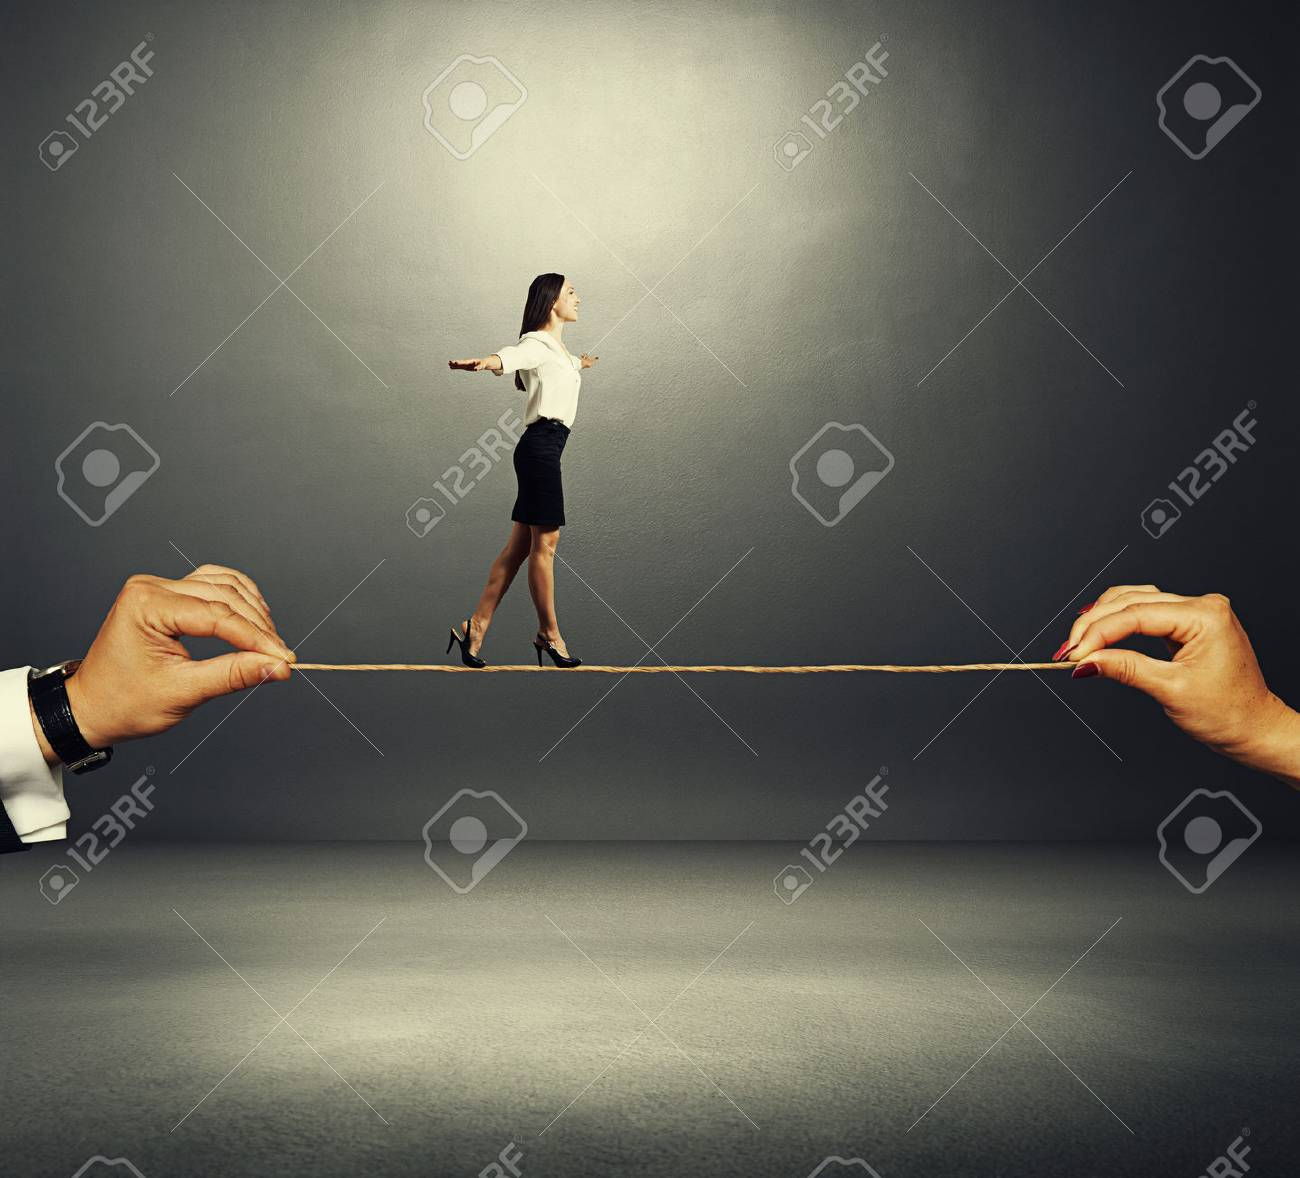 assured smiley woman walking on the rope over dark background Stock Photo - 29018736